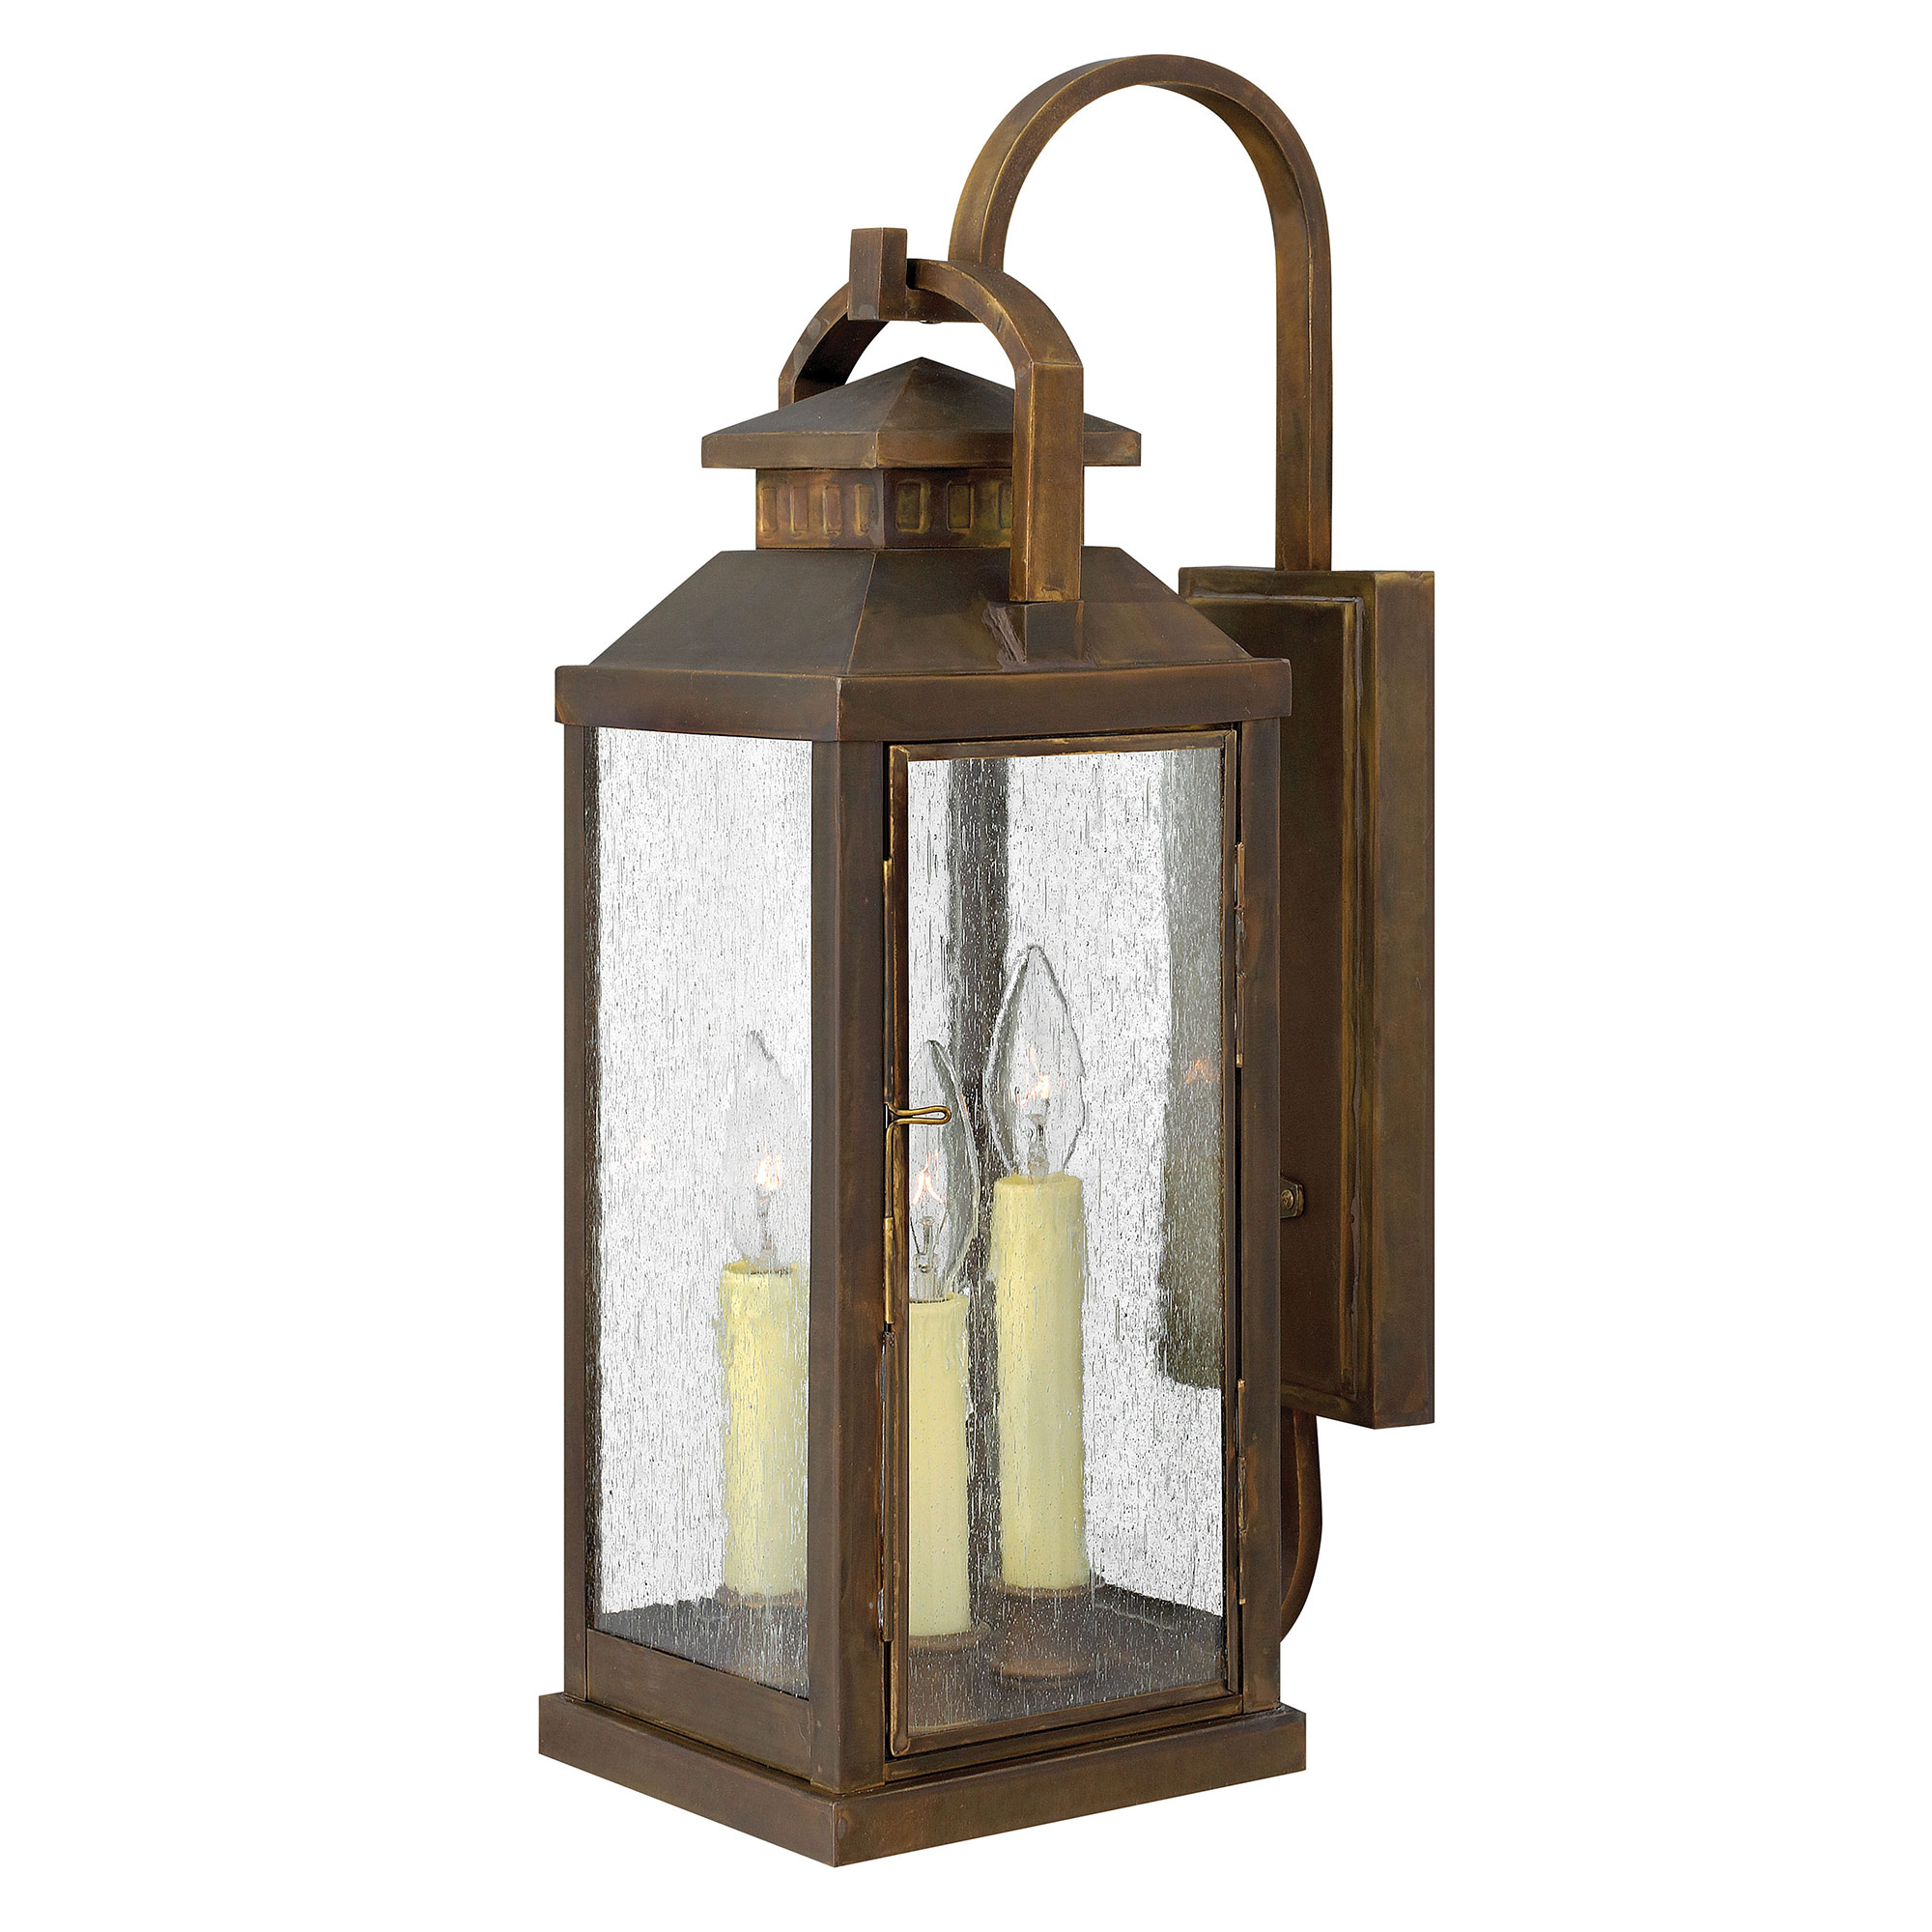 Discount Outdoor Wall Lighting: Revere Outdoor Wall Sconce By Hinkley Lighting